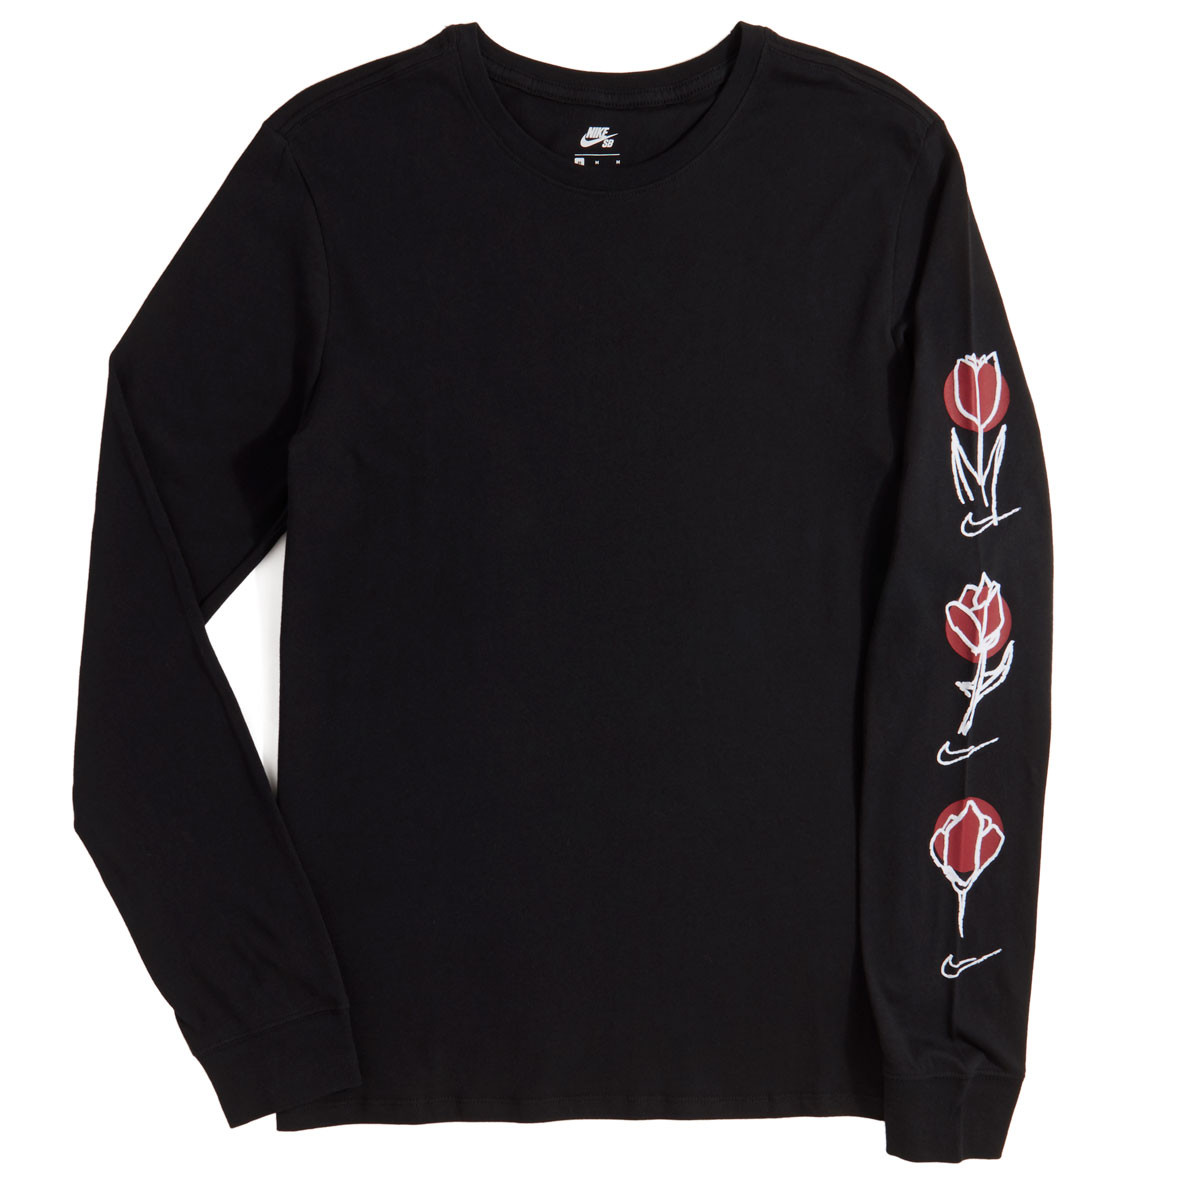 985466dc20c Nike SB Roses Long Sleeve T-Shirt - Black White